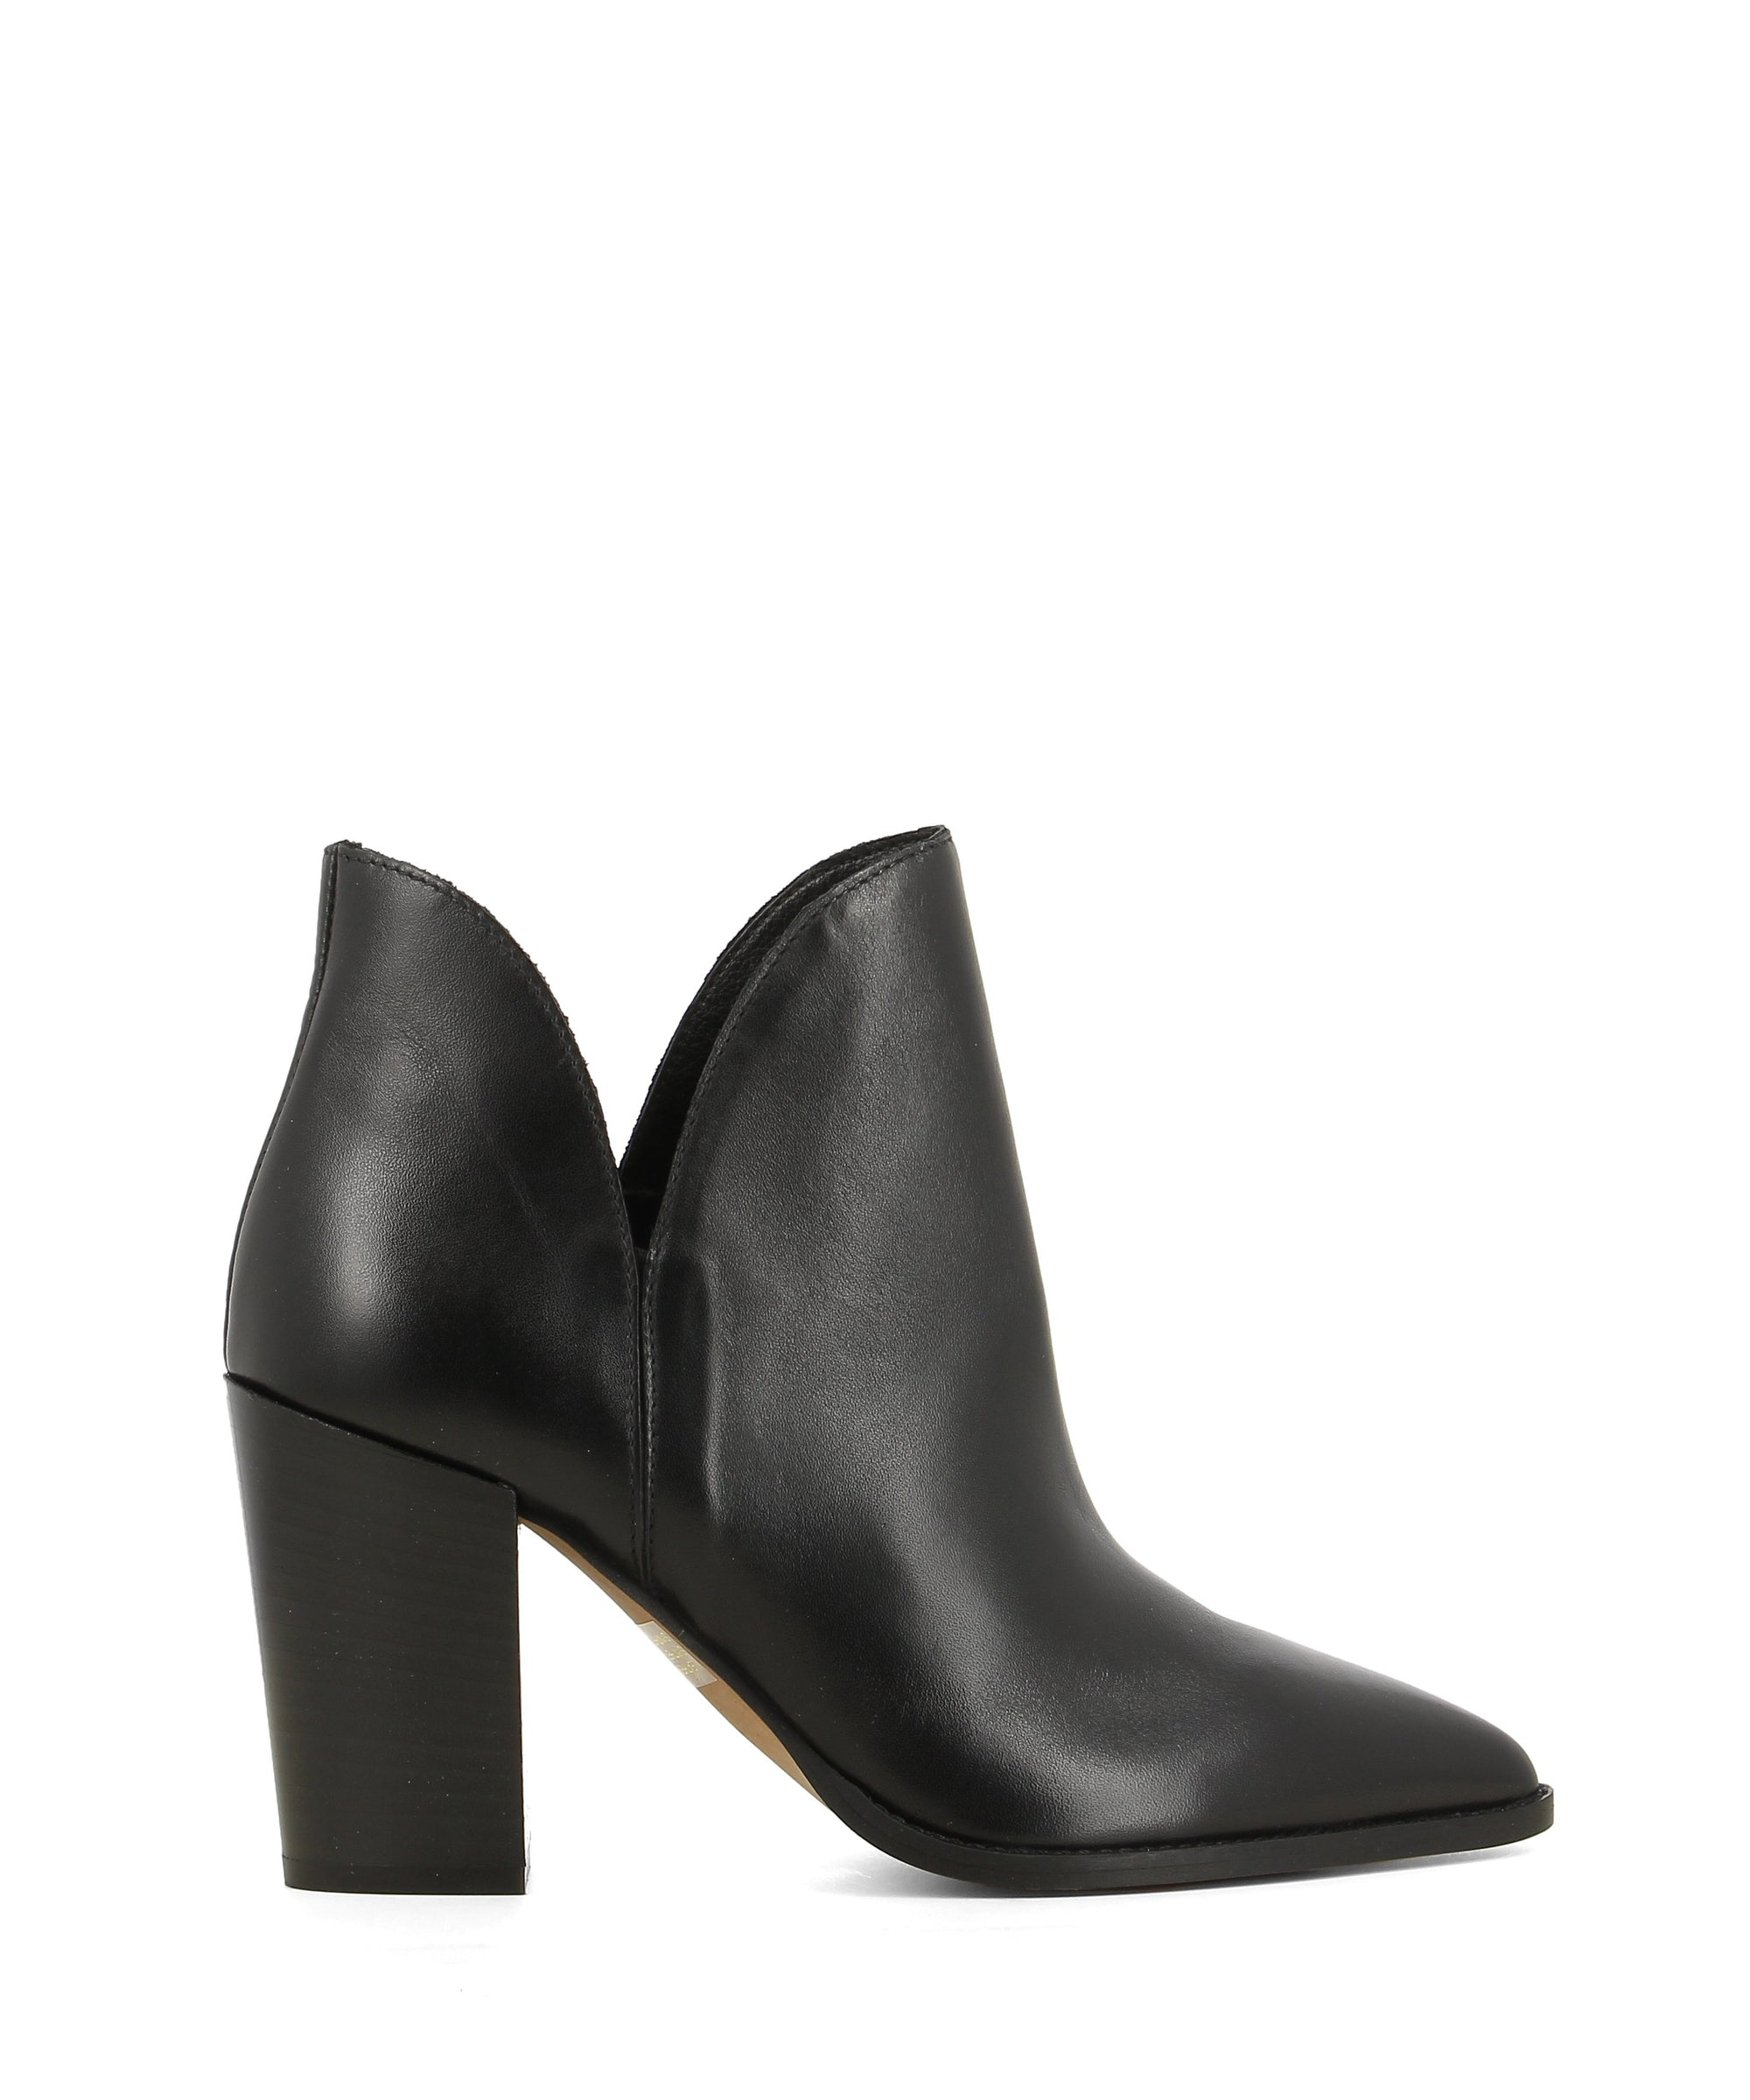 A black leather ankle boot featuring cut out sides, a tall block heel and a pointed toe by Christian Di Riccio. This style runs true to size.